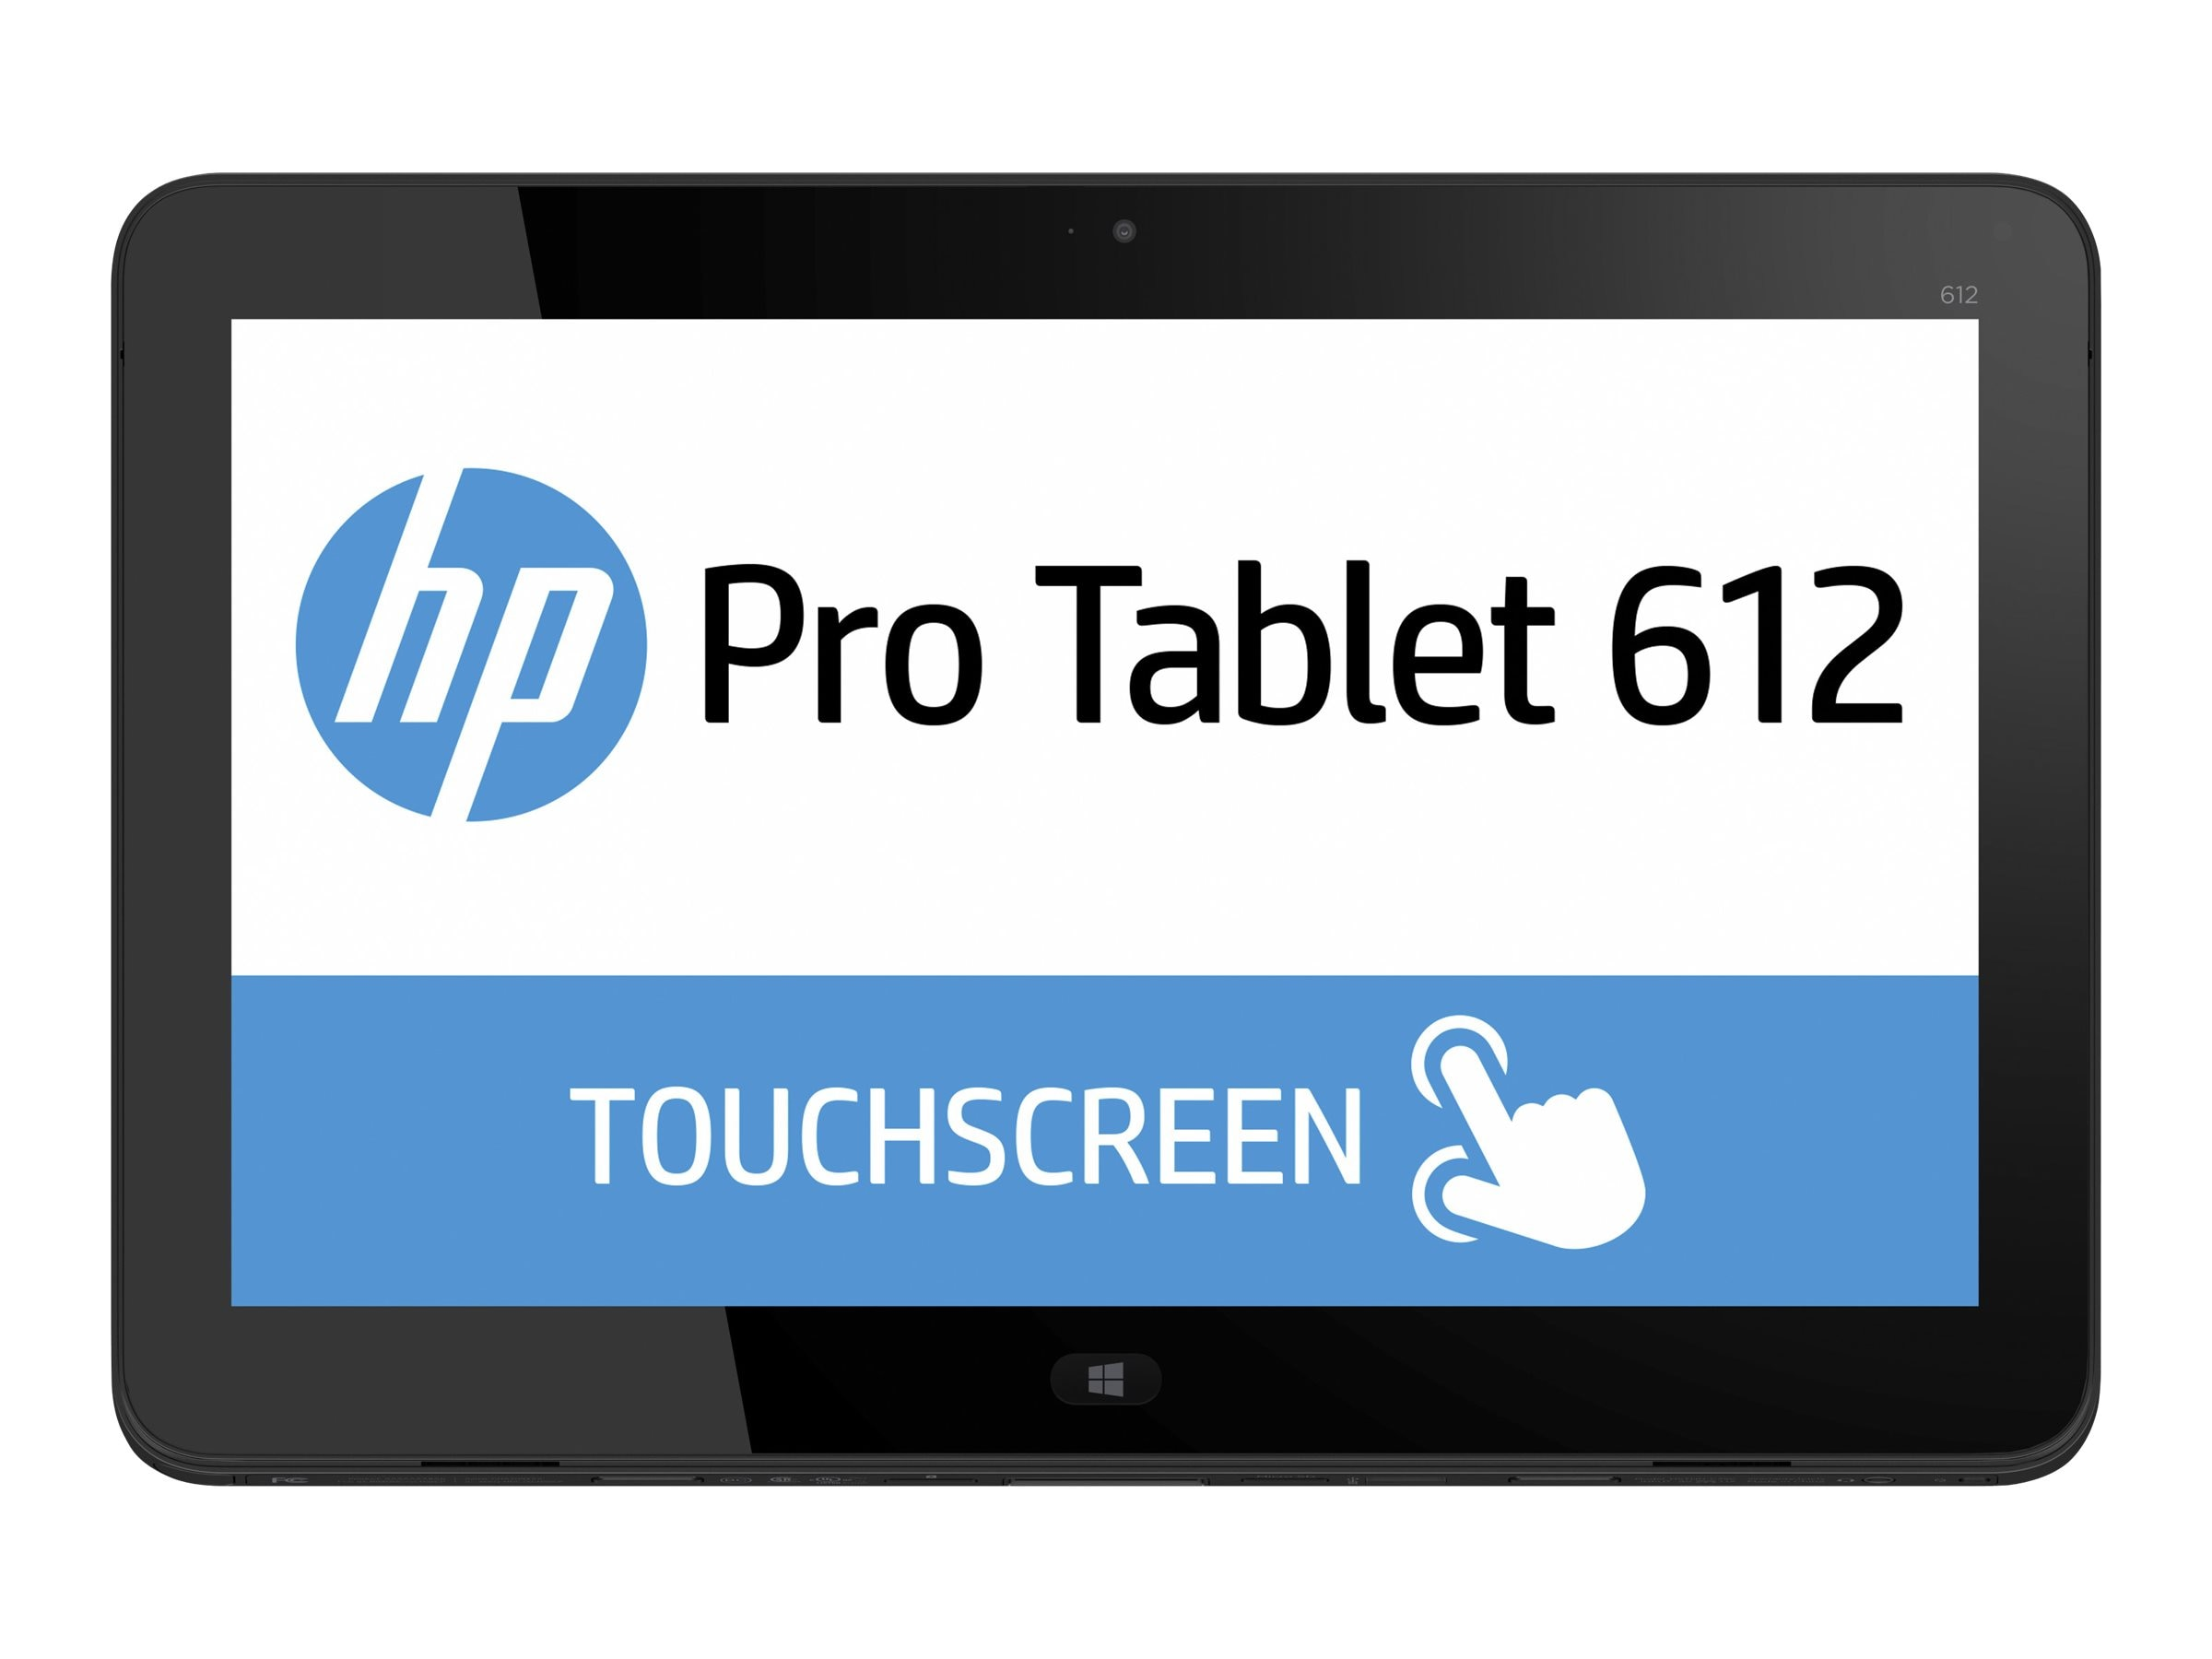 HP Smart Buy Pro 612 x2 G1 1.6GHz processor Windows 10 Pro 64-bit Edition, P3E18UT#ABA, 28891159, Tablets